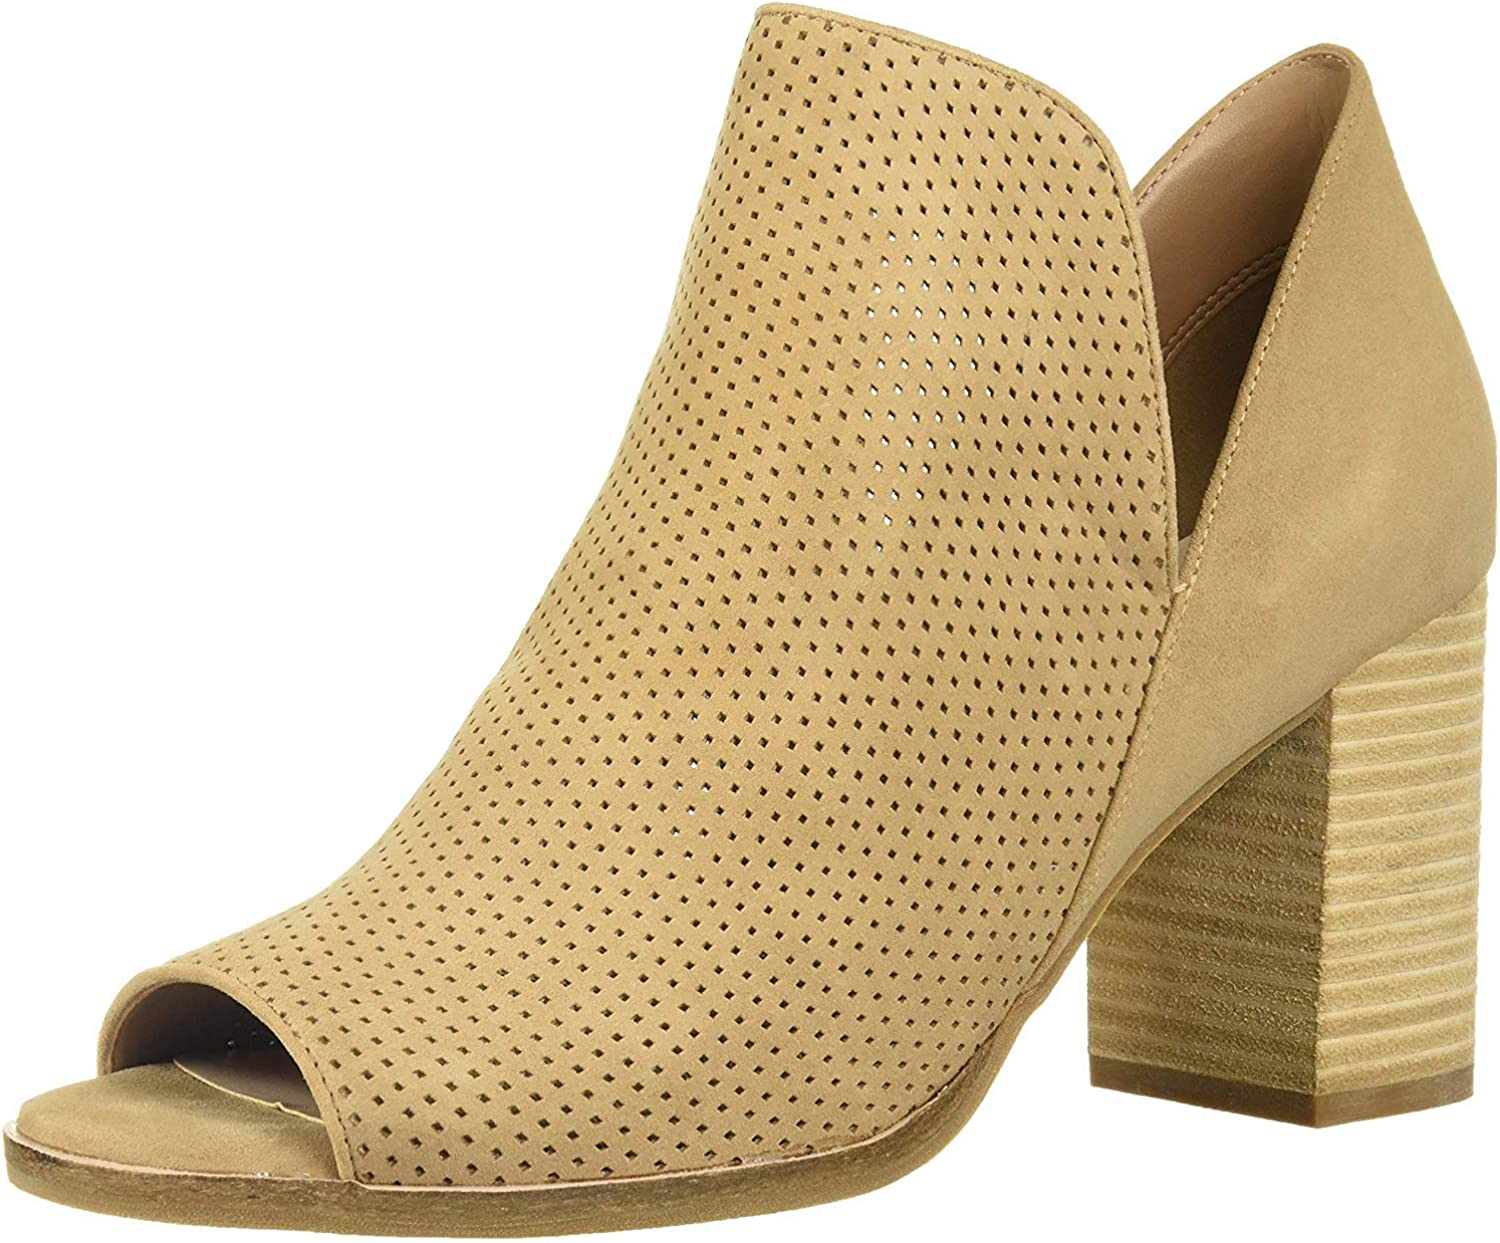 Cole Haan Women's Shiloh Open Toe Bootie (75mm) Ankle Boot